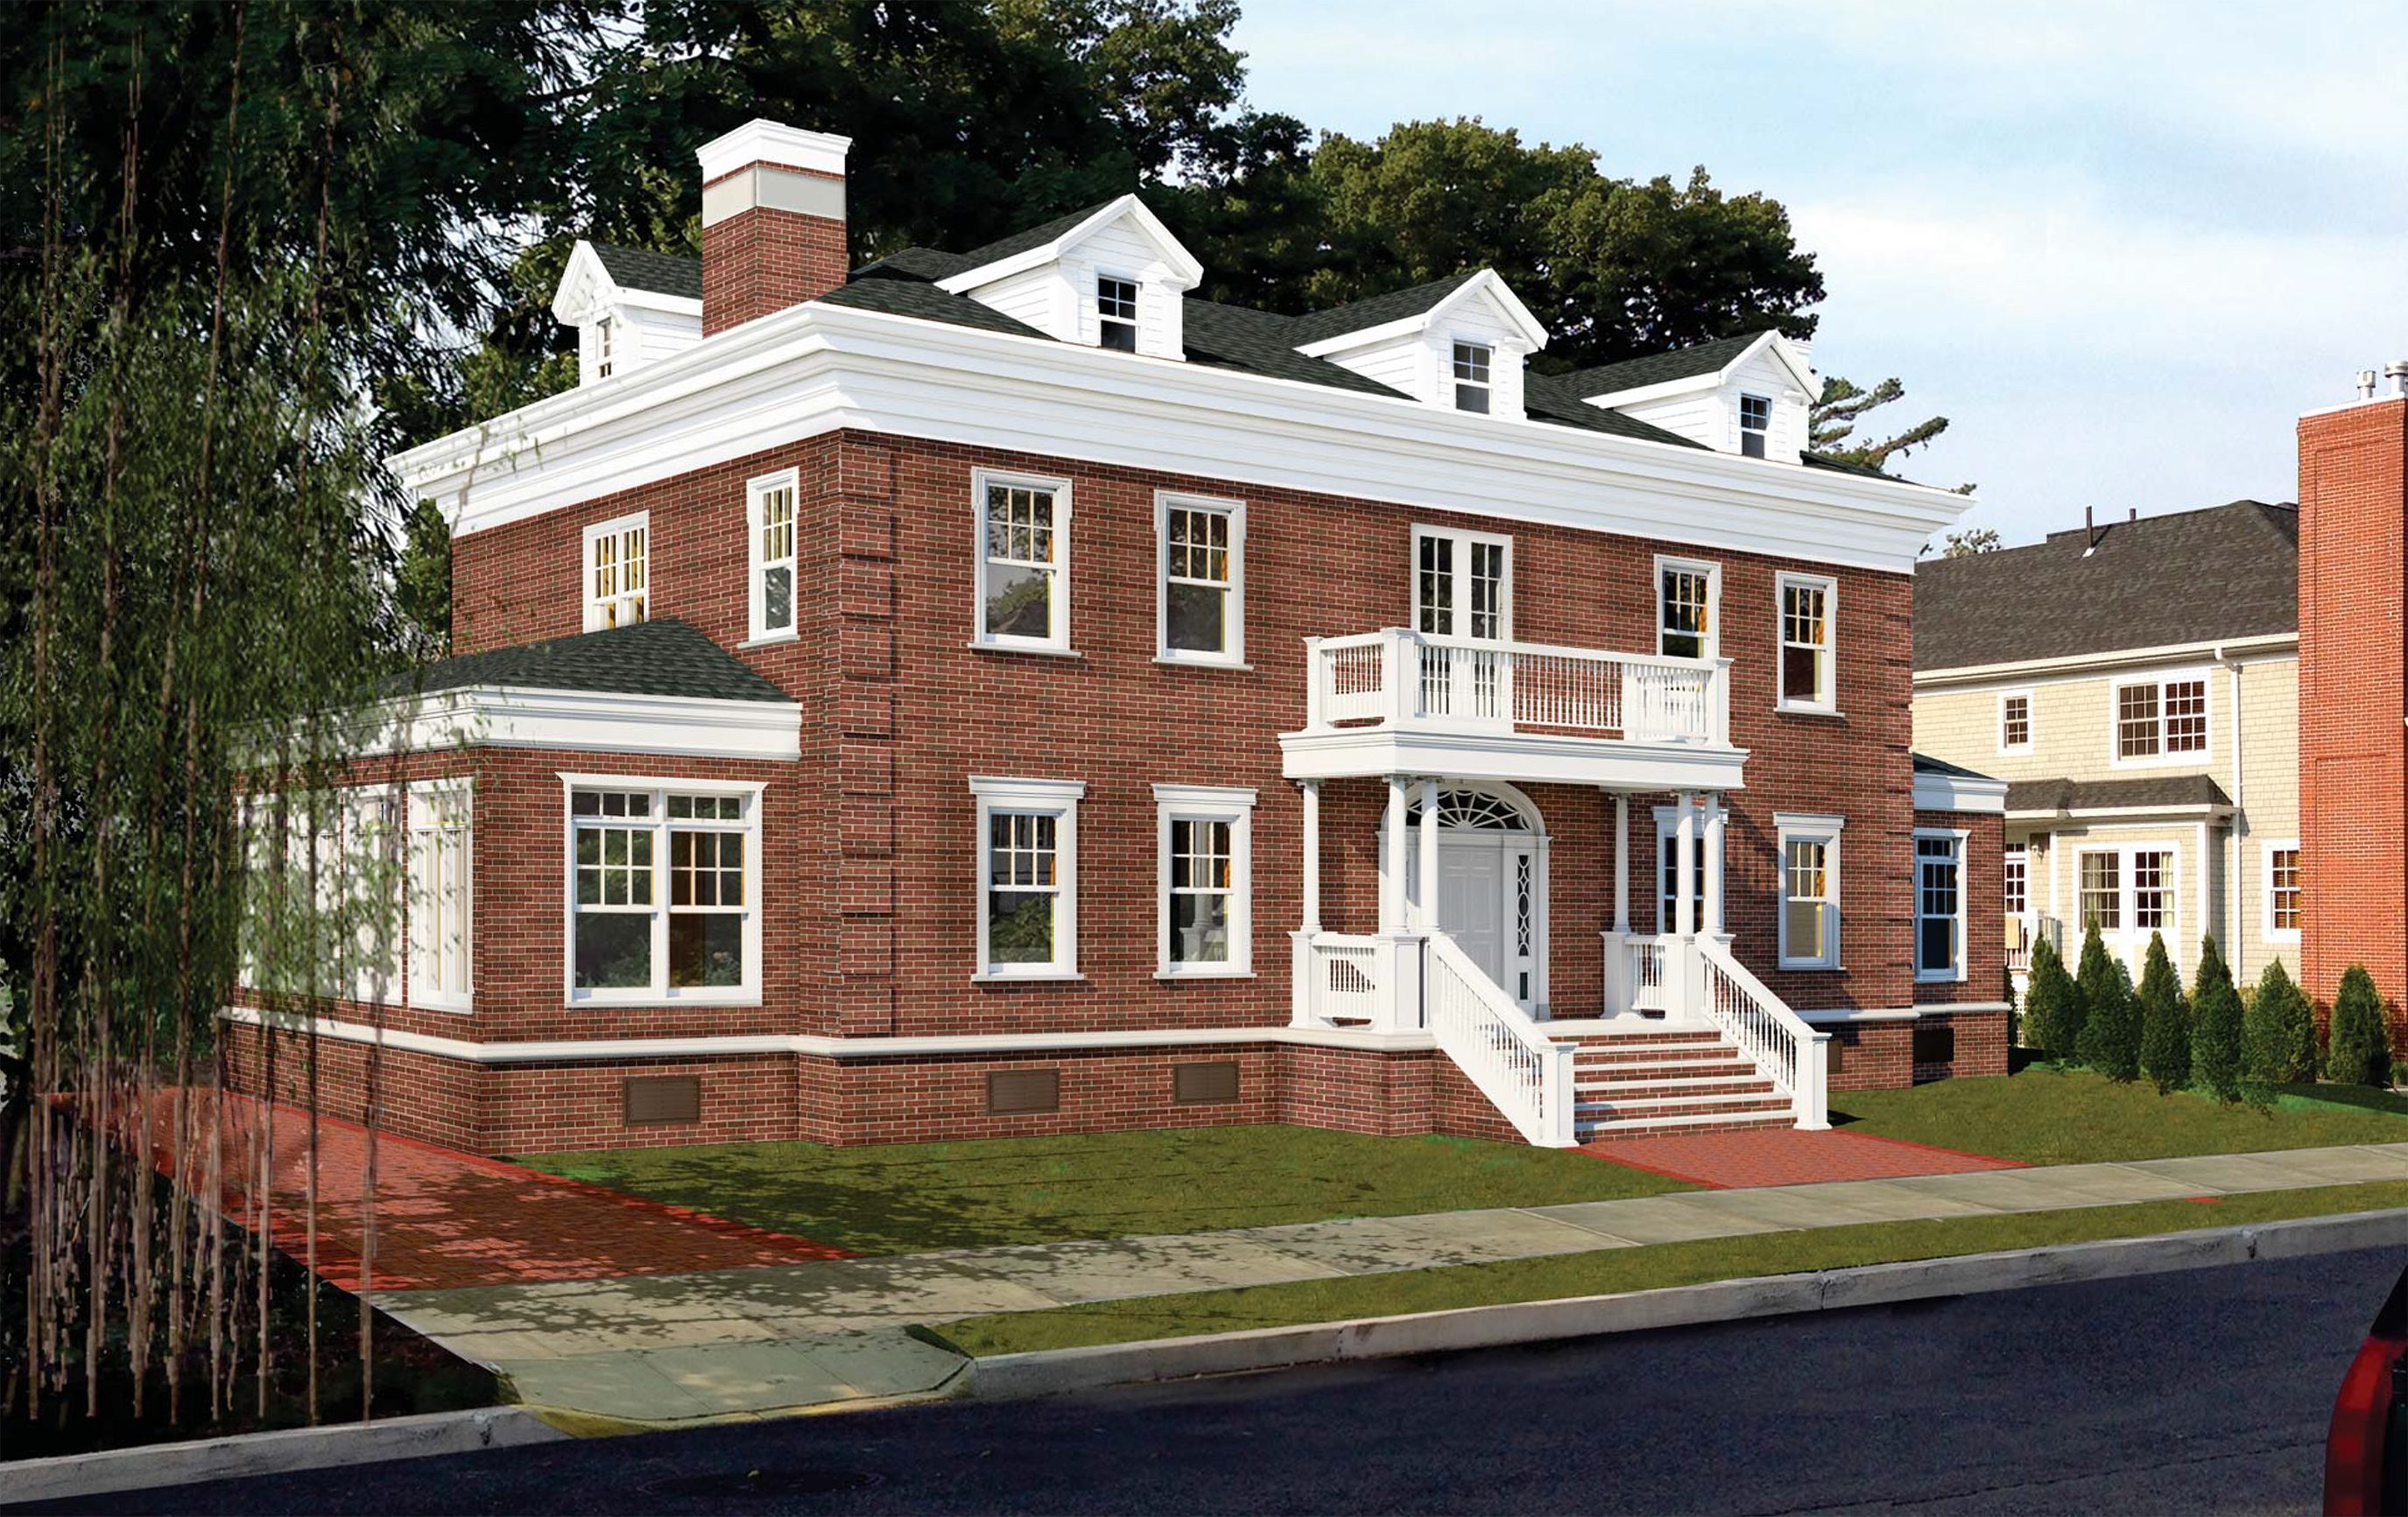 Proposal for new house at 233-33 38th Drive in Douglaston, Queens